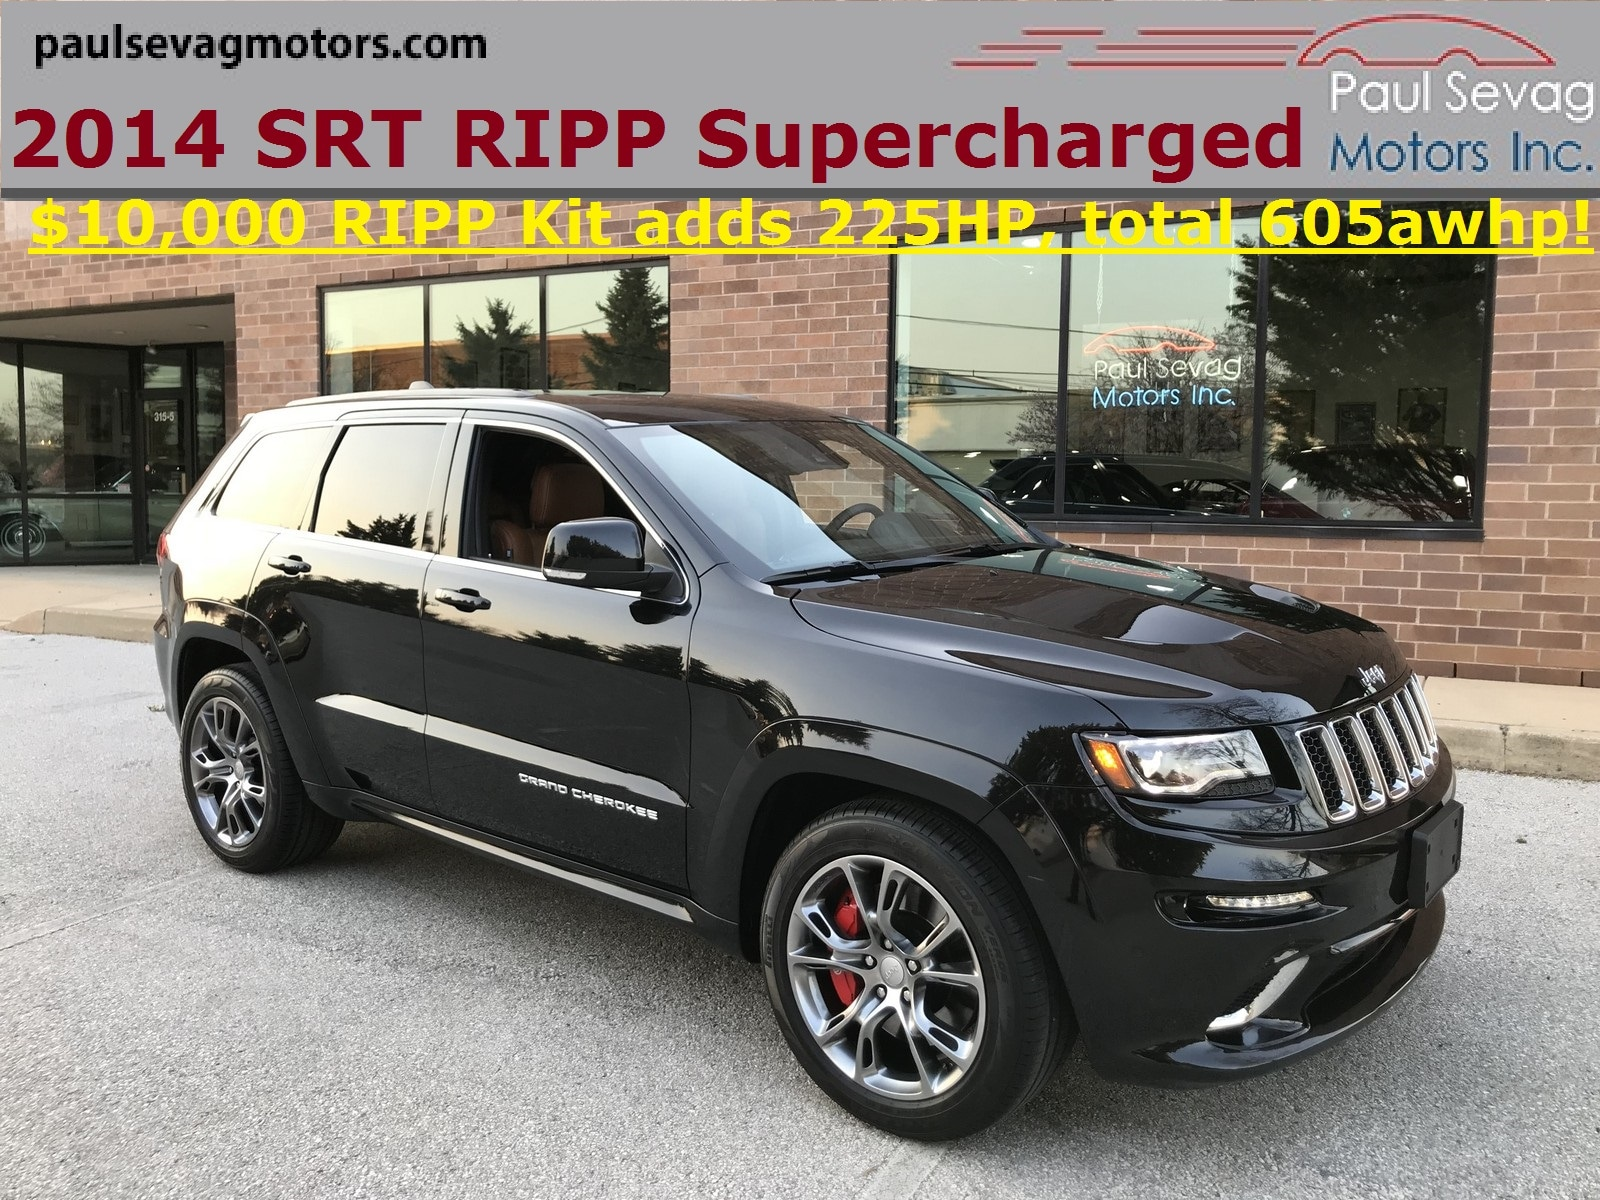 2014 Jeep Grand Cherokee SRT with RIPP SUPERCHARGER 225HP UPGRADE KIT SUV